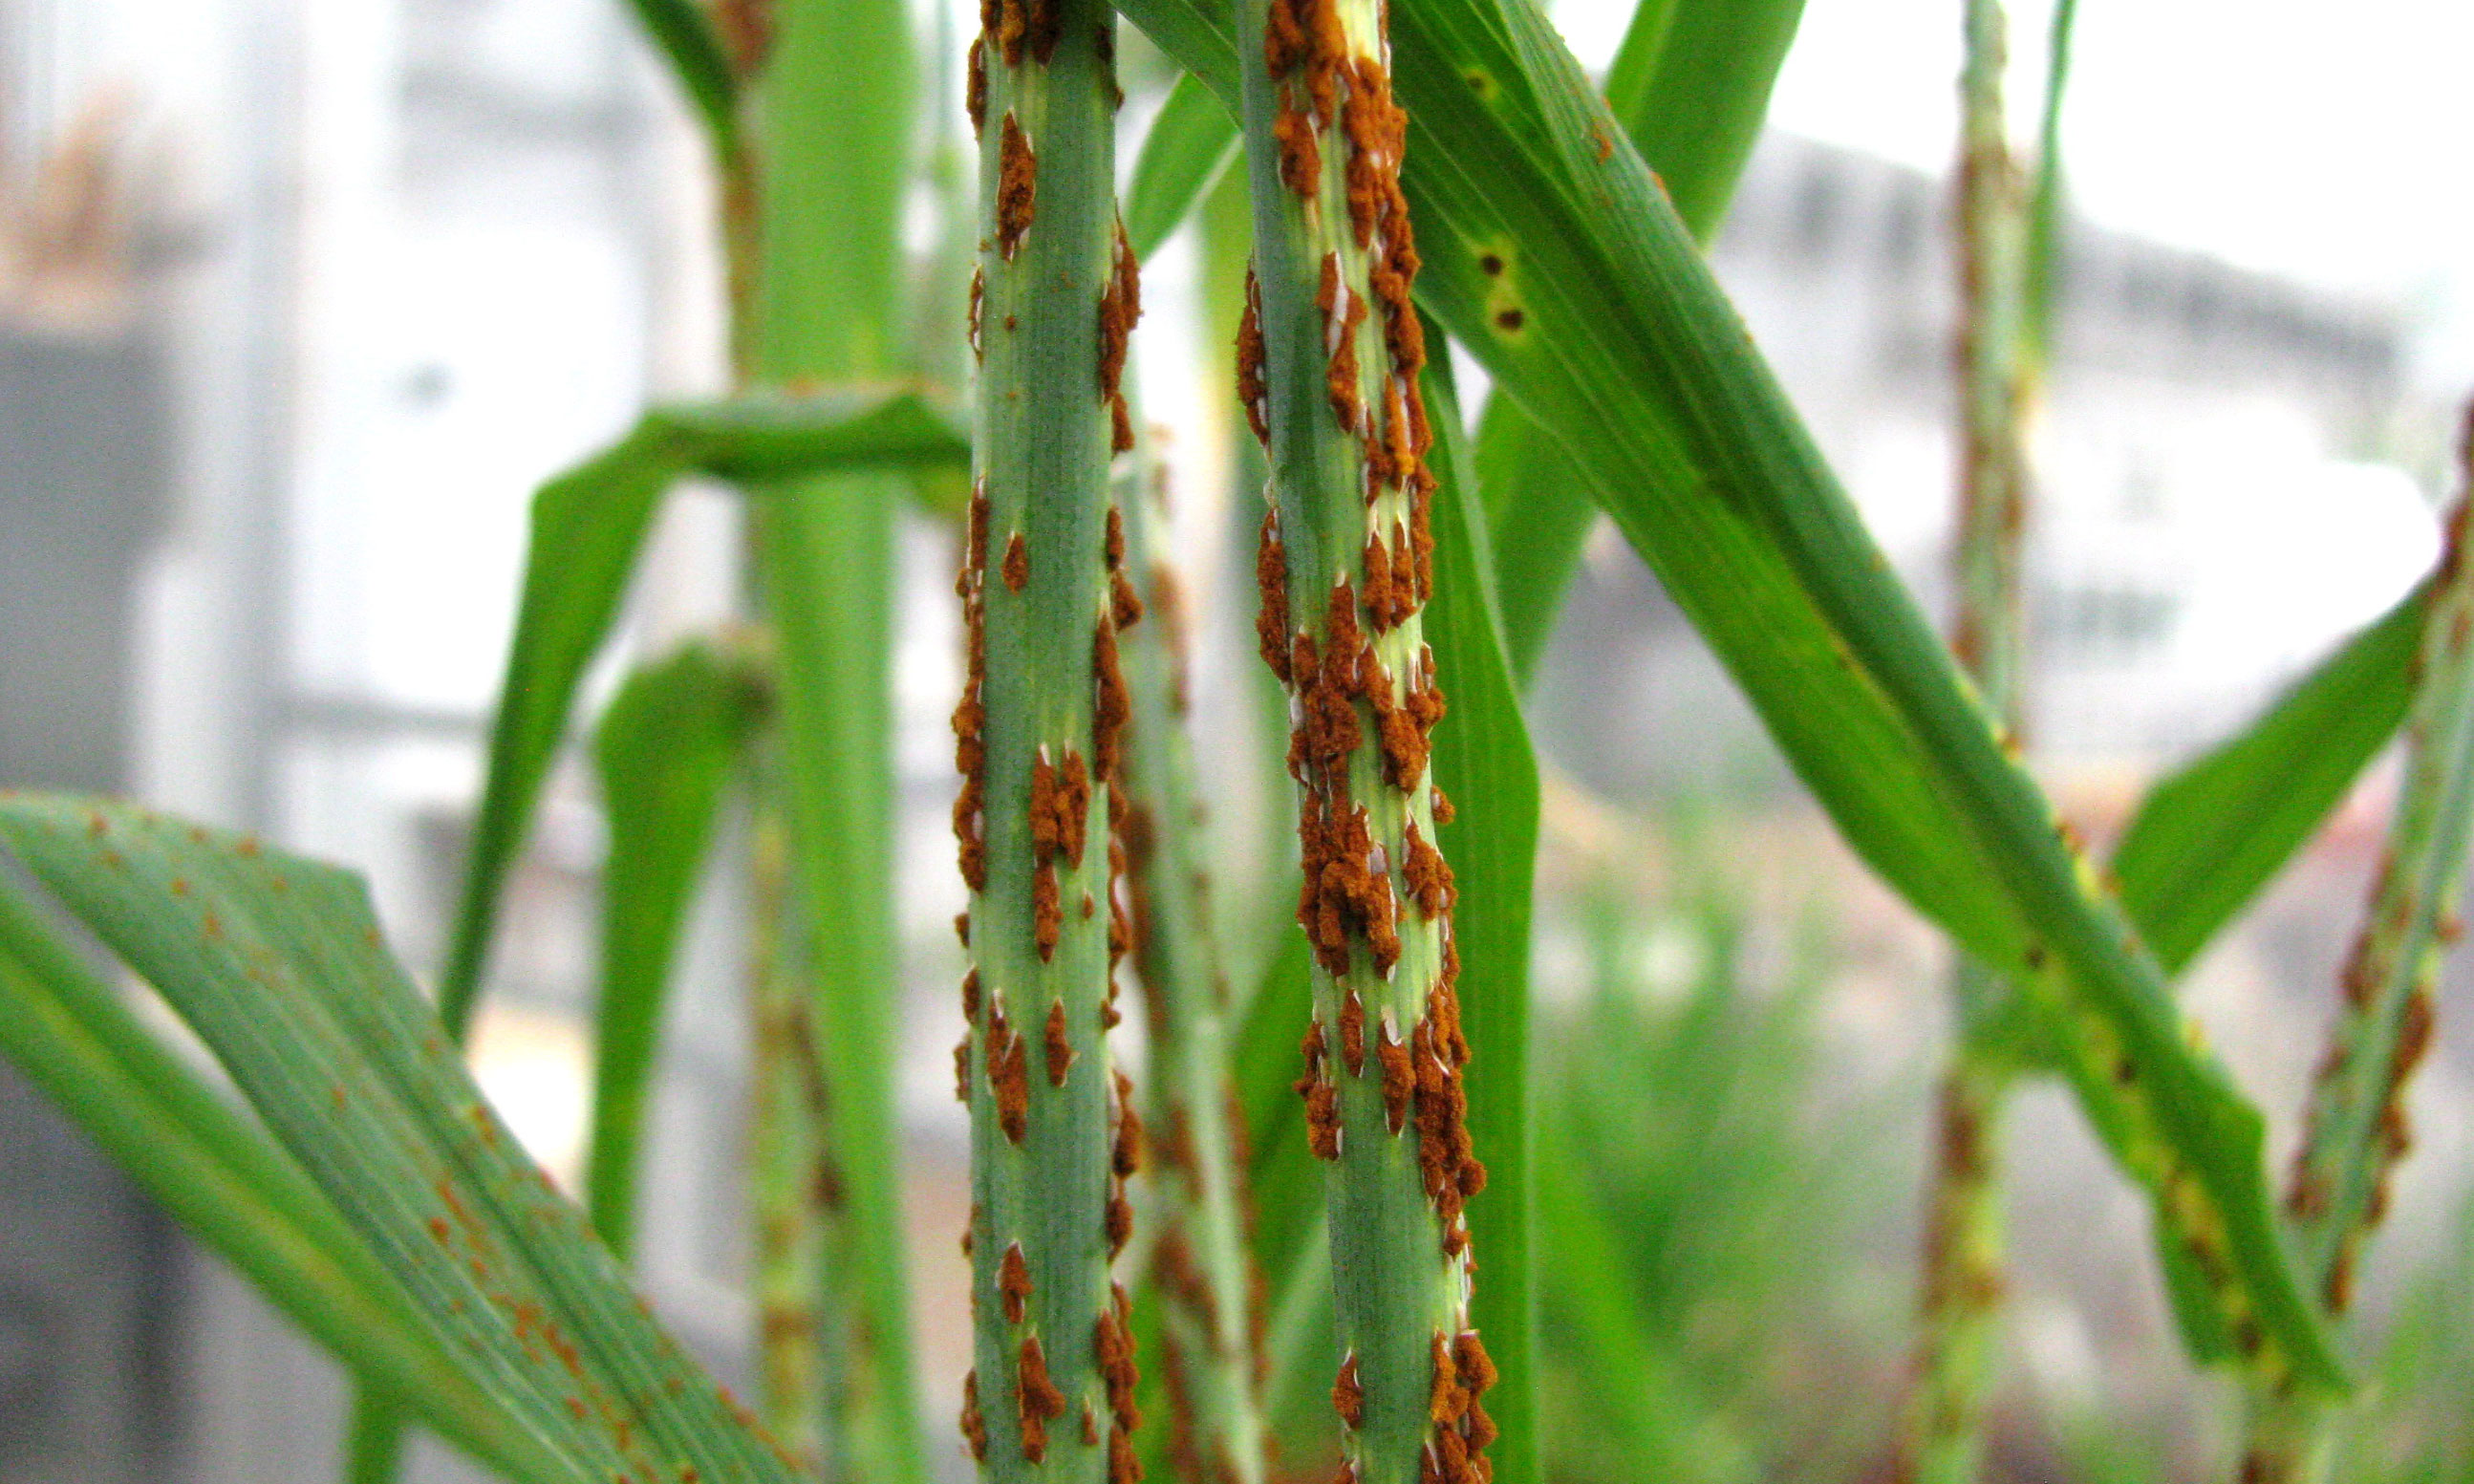 Red spots on a wheat stalk